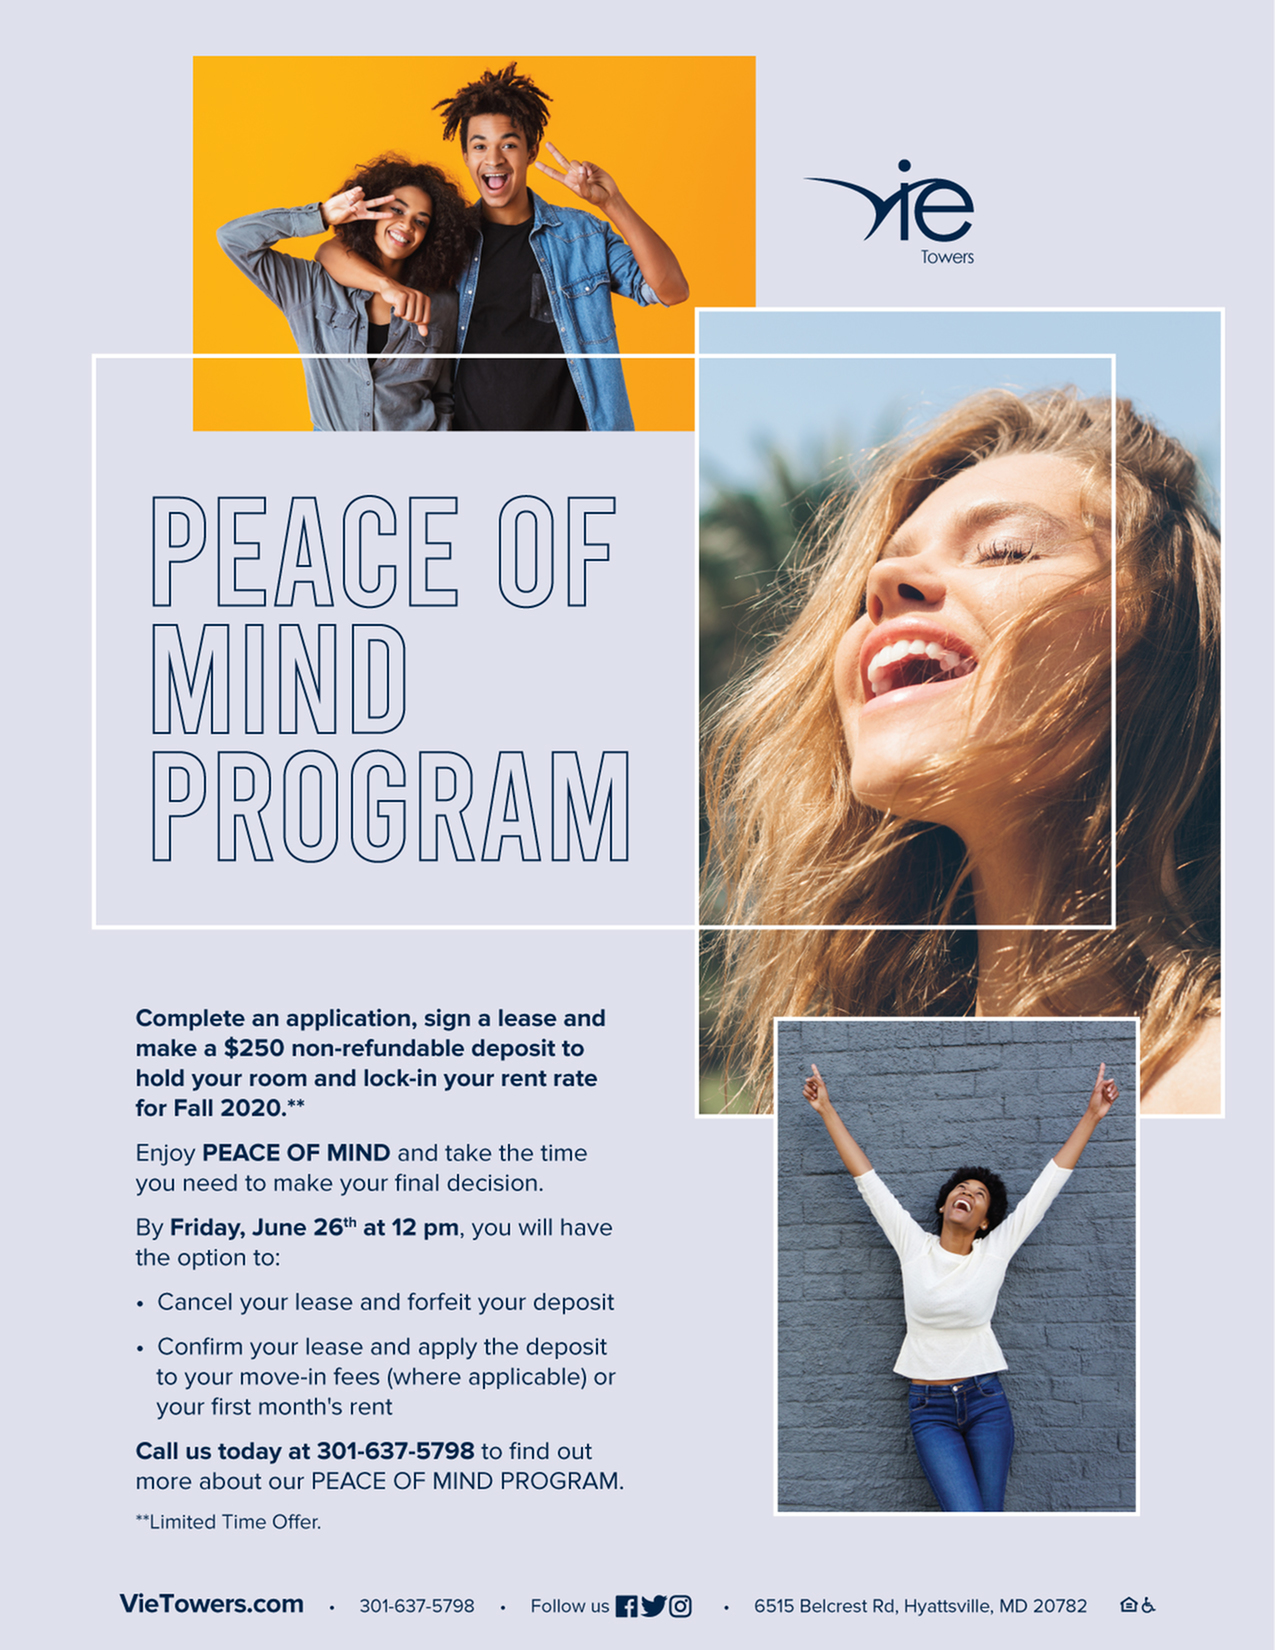 Extended! Peace of Mind Program Ends Friday, June 26th at 12 pm-image